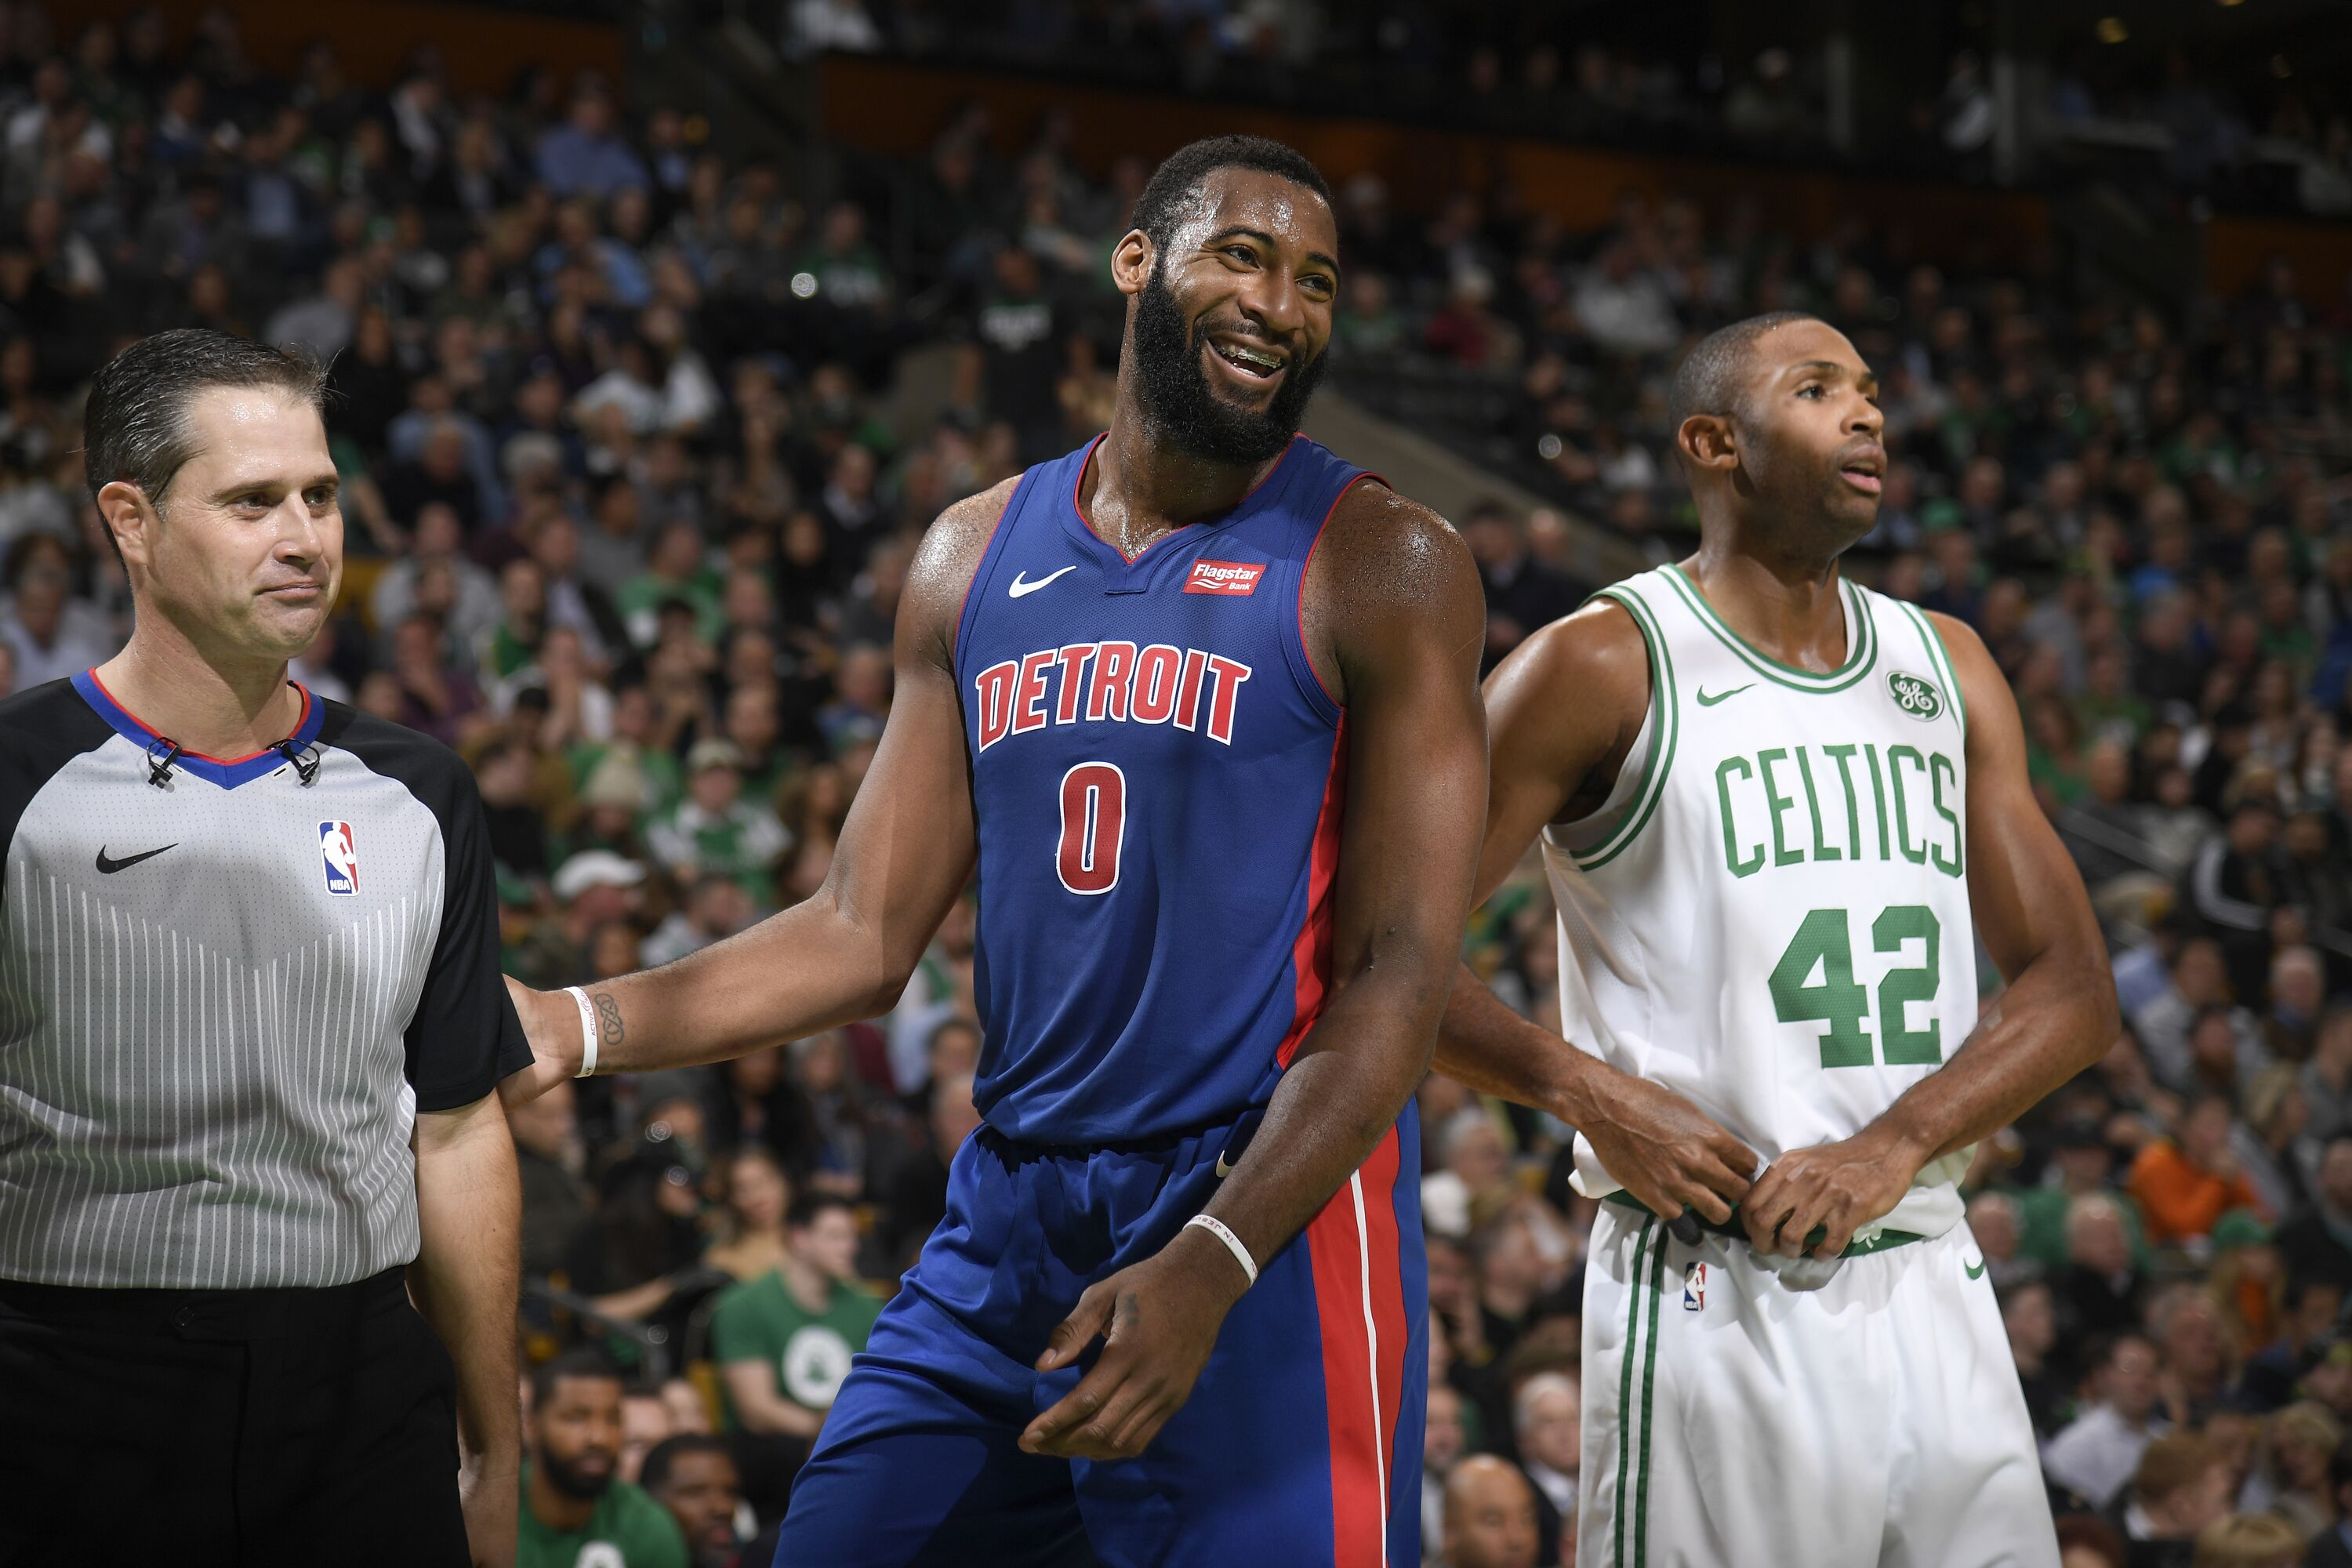 880559430-detroit-pistons-v-boston-celtics.jpg